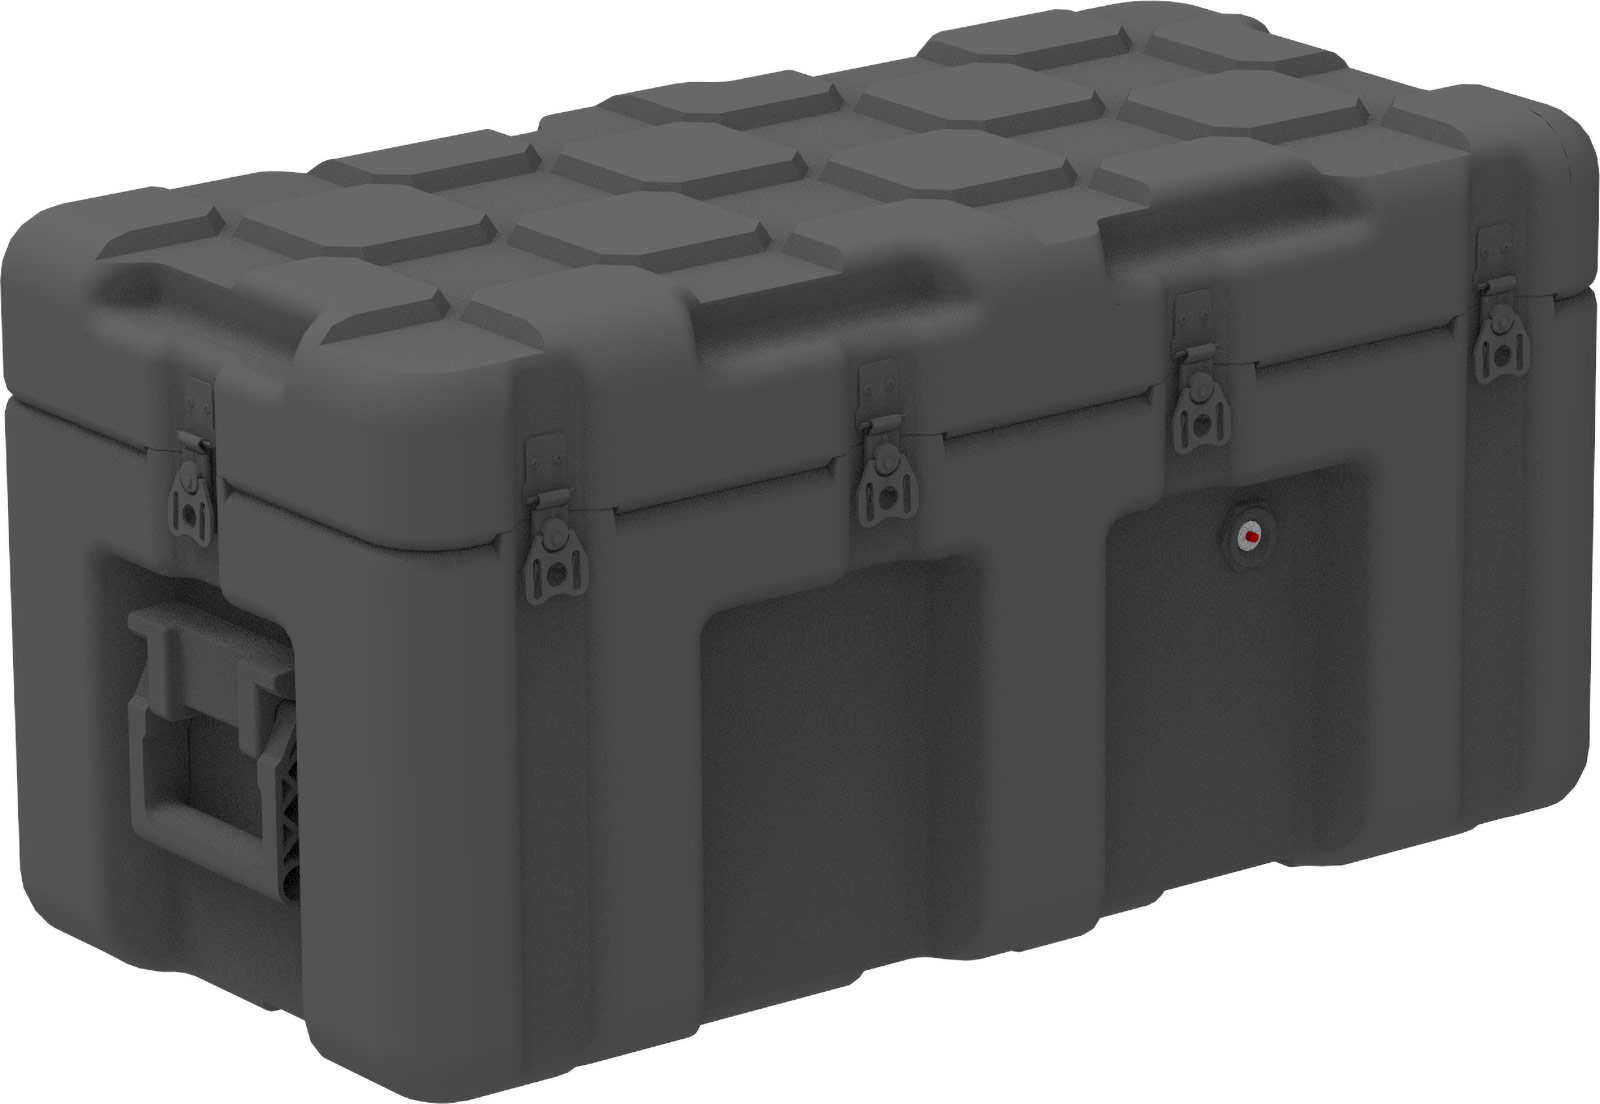 peli eu080040-3010-blk-032 isp2 shipping case